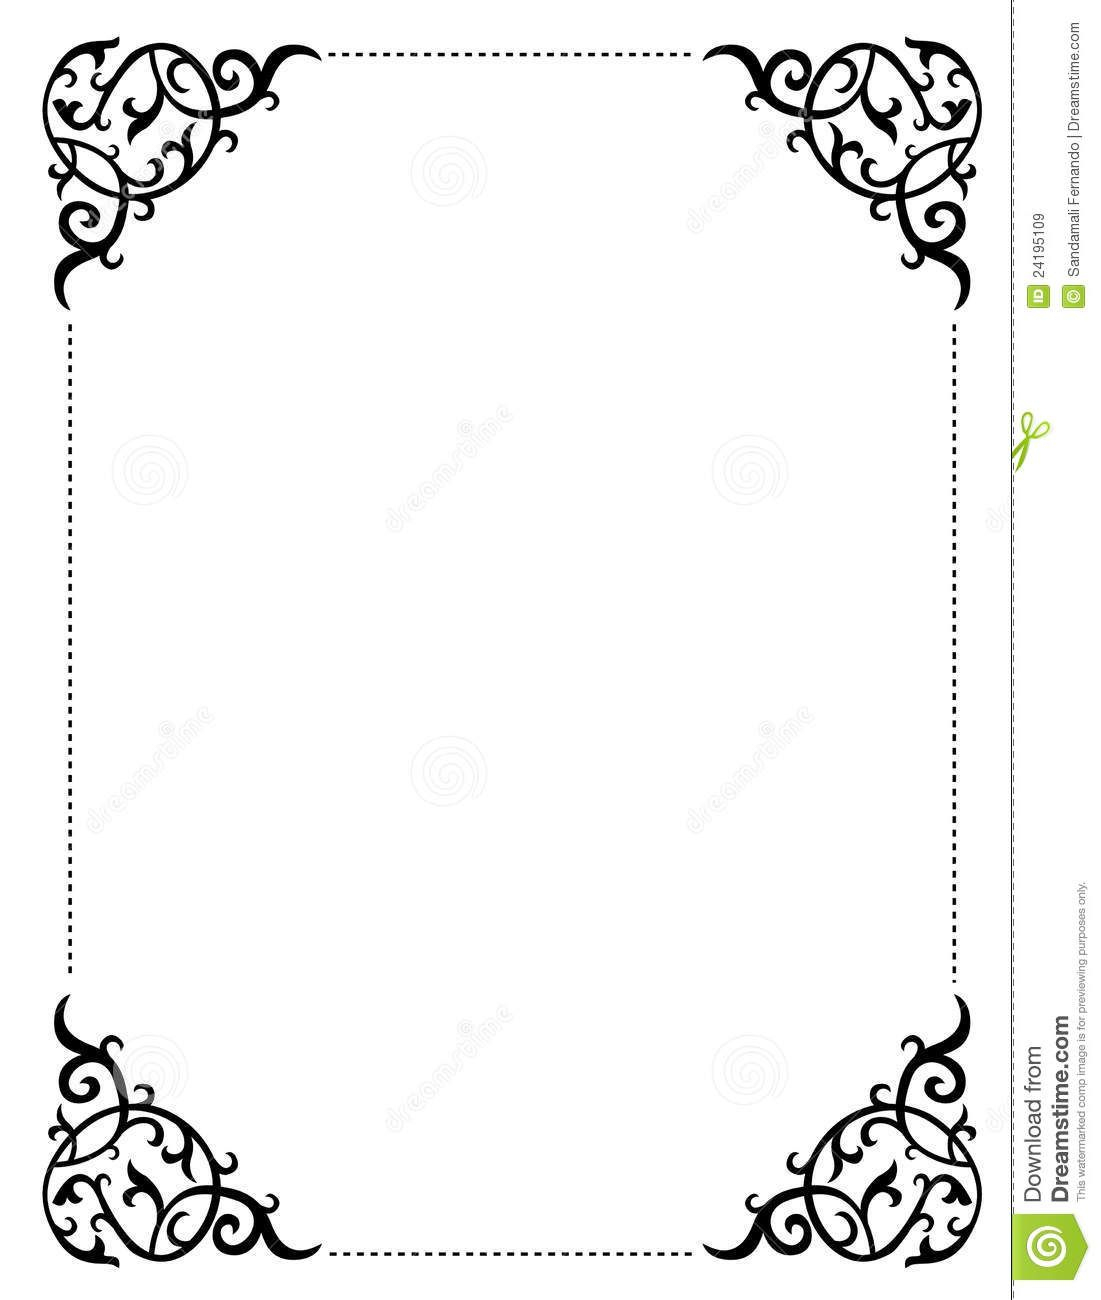 Free Printable Wedding Clip Art Borders And Backgrounds Invitation - Free Printable Wedding Scrolls